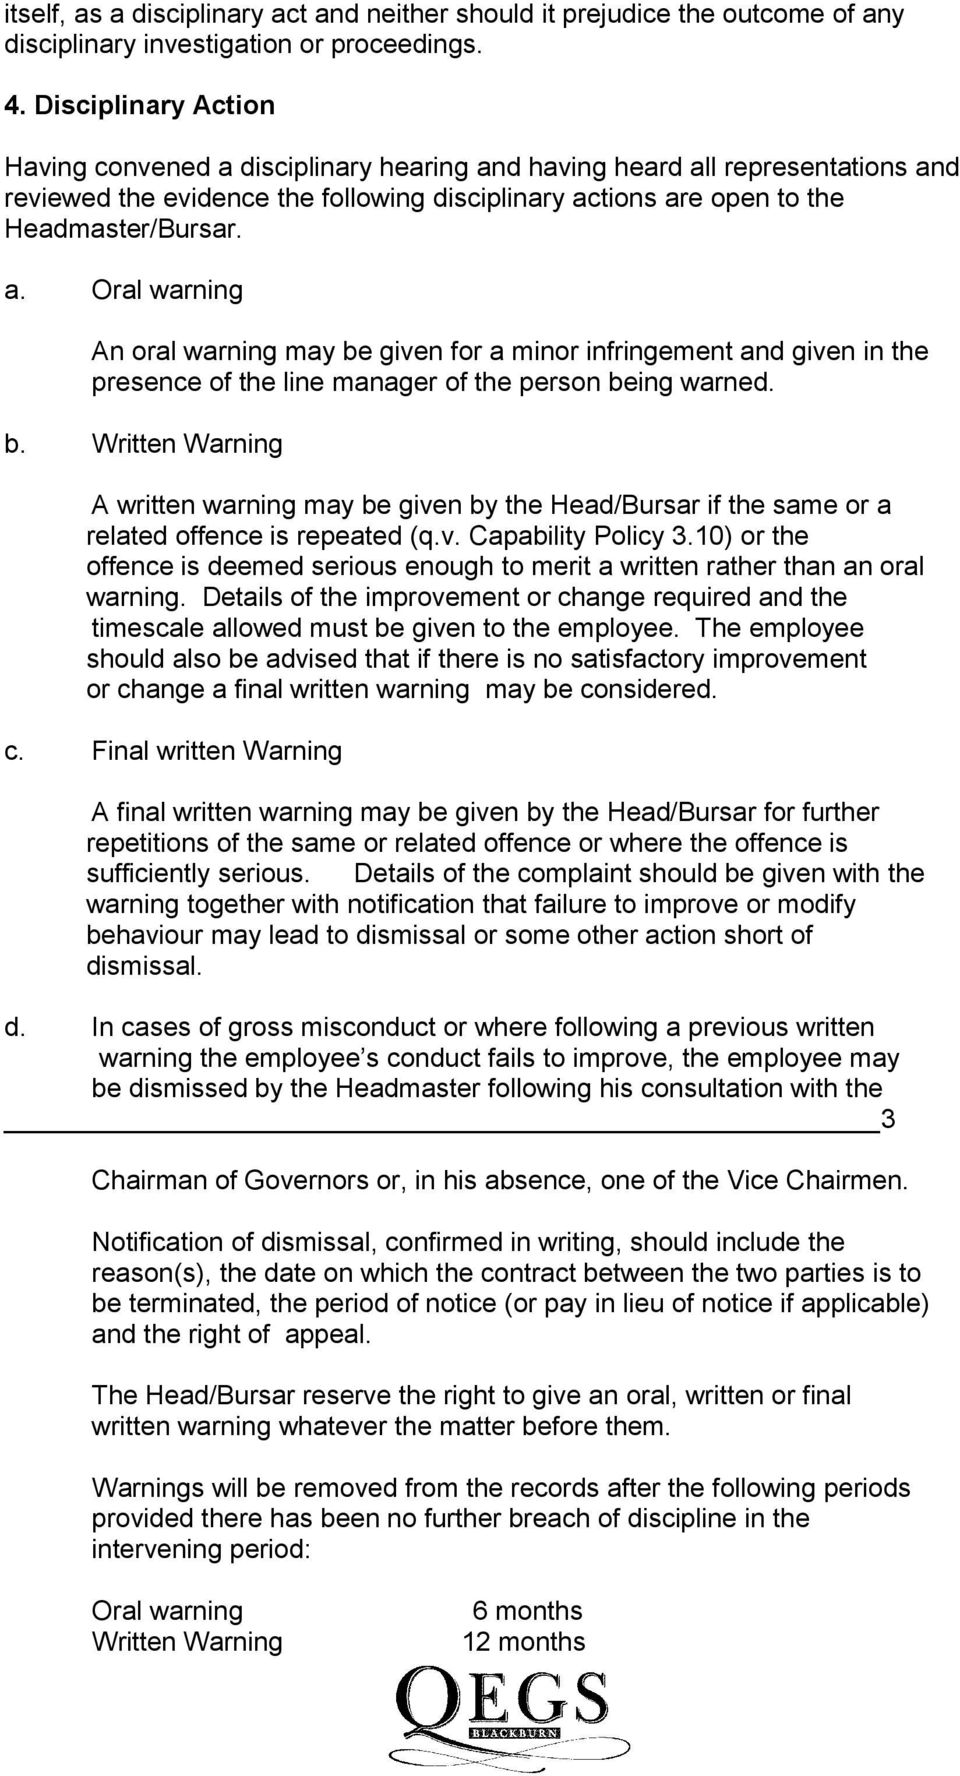 b. Written Warning A written warning may be given by the Head/Bursar if the same or a related offence is repeated (q.v. Capability Policy 3.